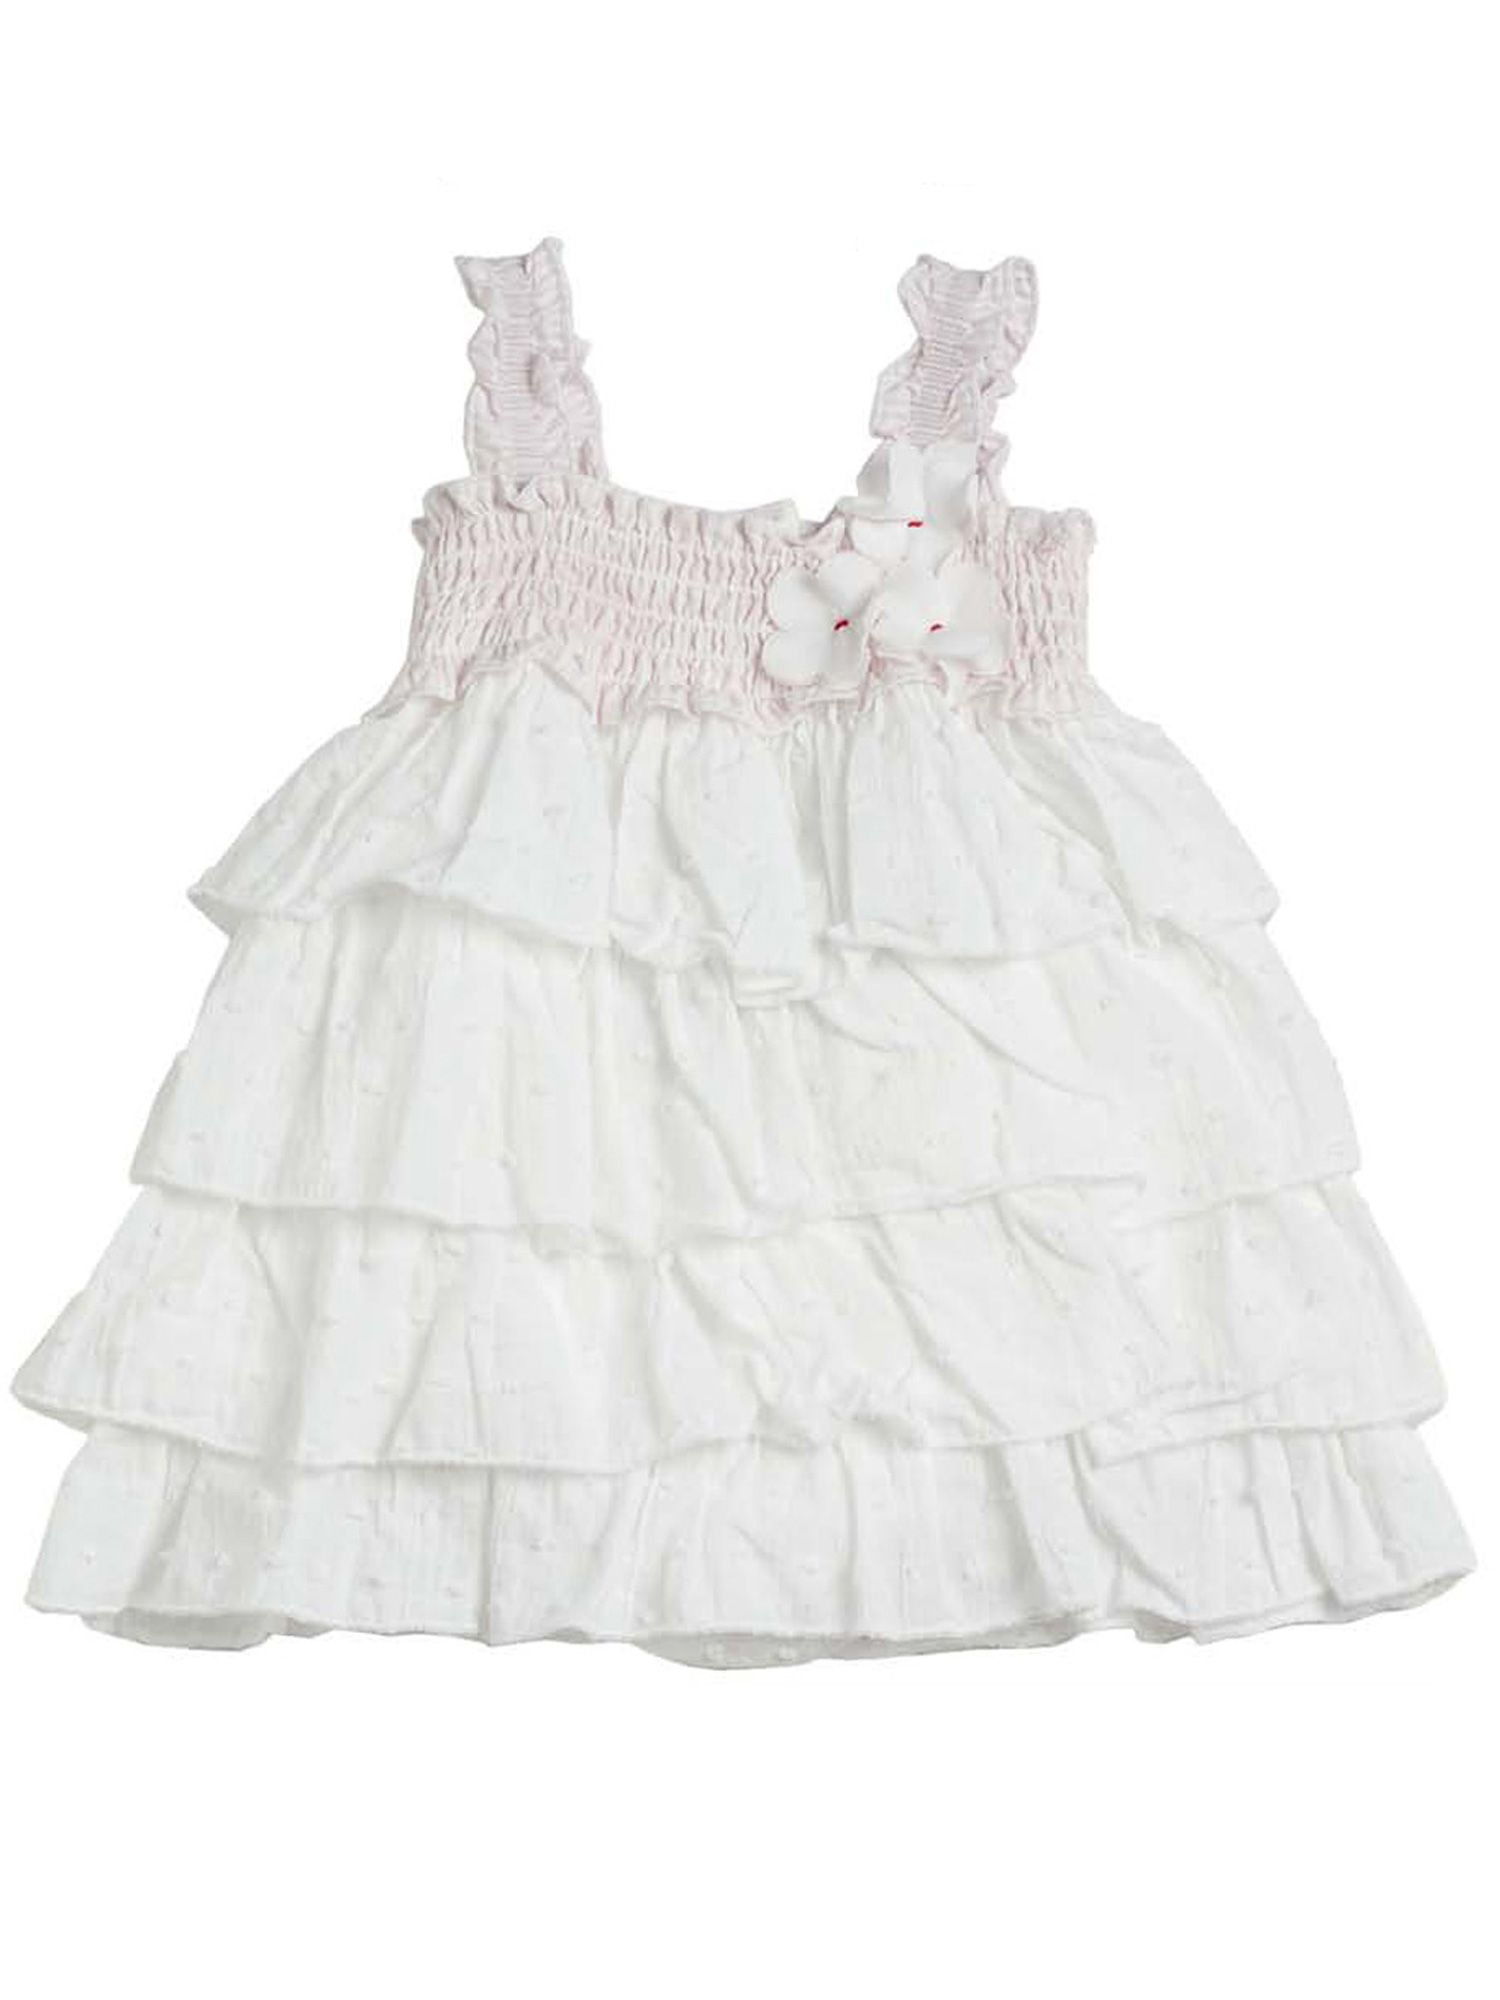 Baby girls cotton dress with knickers